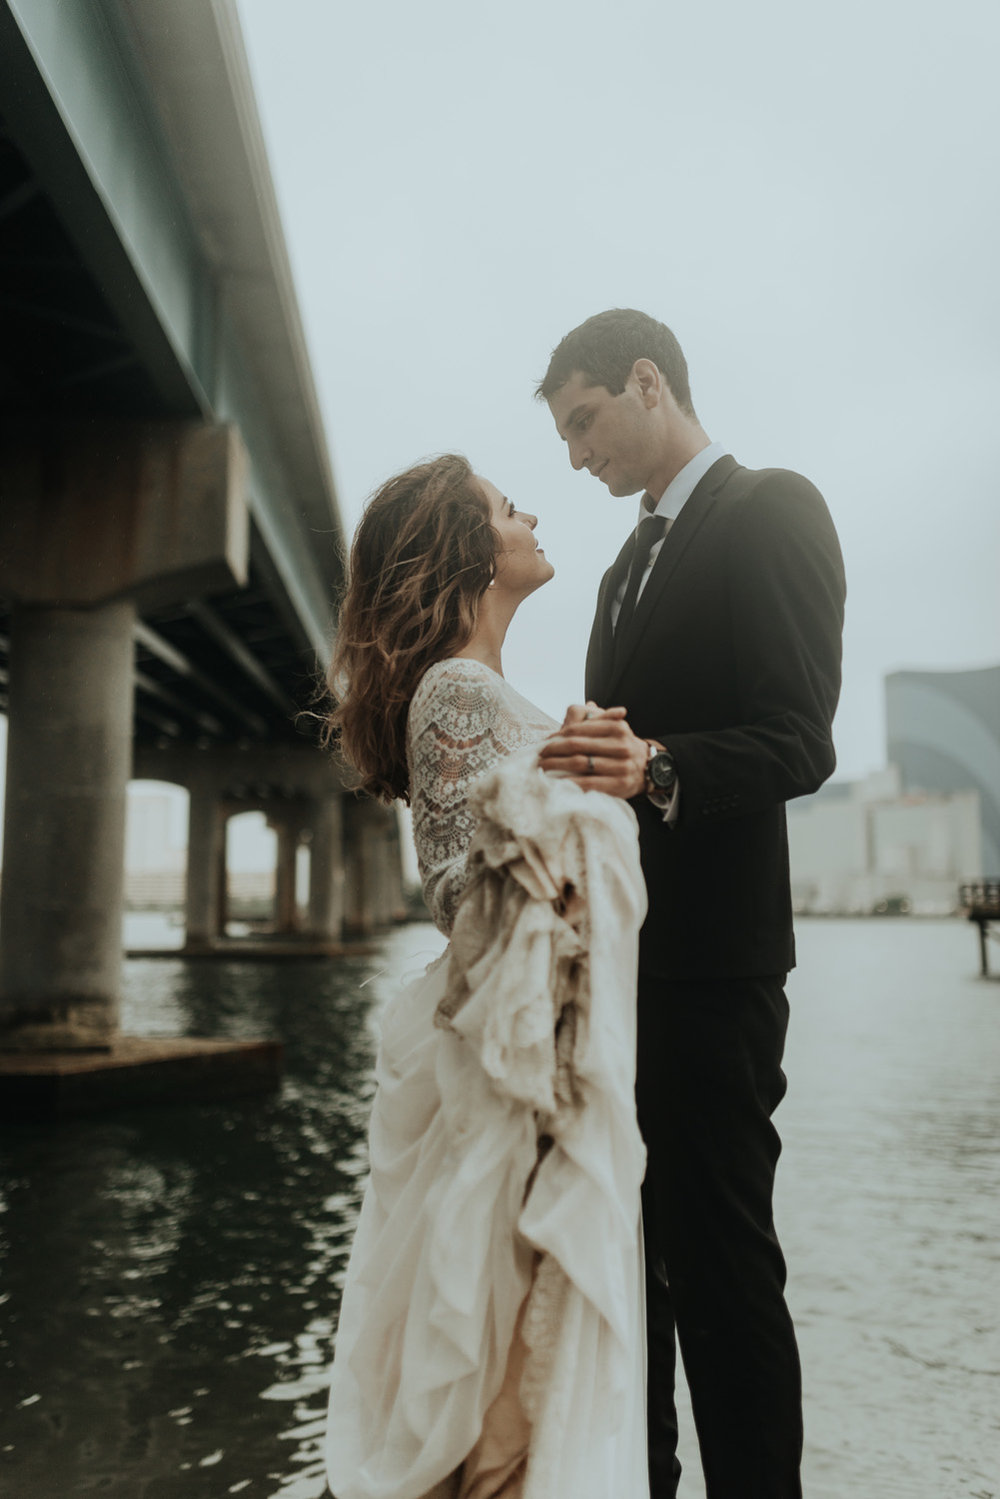 kylewillisphoto_kyle_Willis_Photography_liz_gibbs_brigantine_beach_atlantic_city_wedding_philadelphia_jersey_shore_new_nyc_engagement_delaware_engaged_married_rainy_photos_ac_boho55.jpg